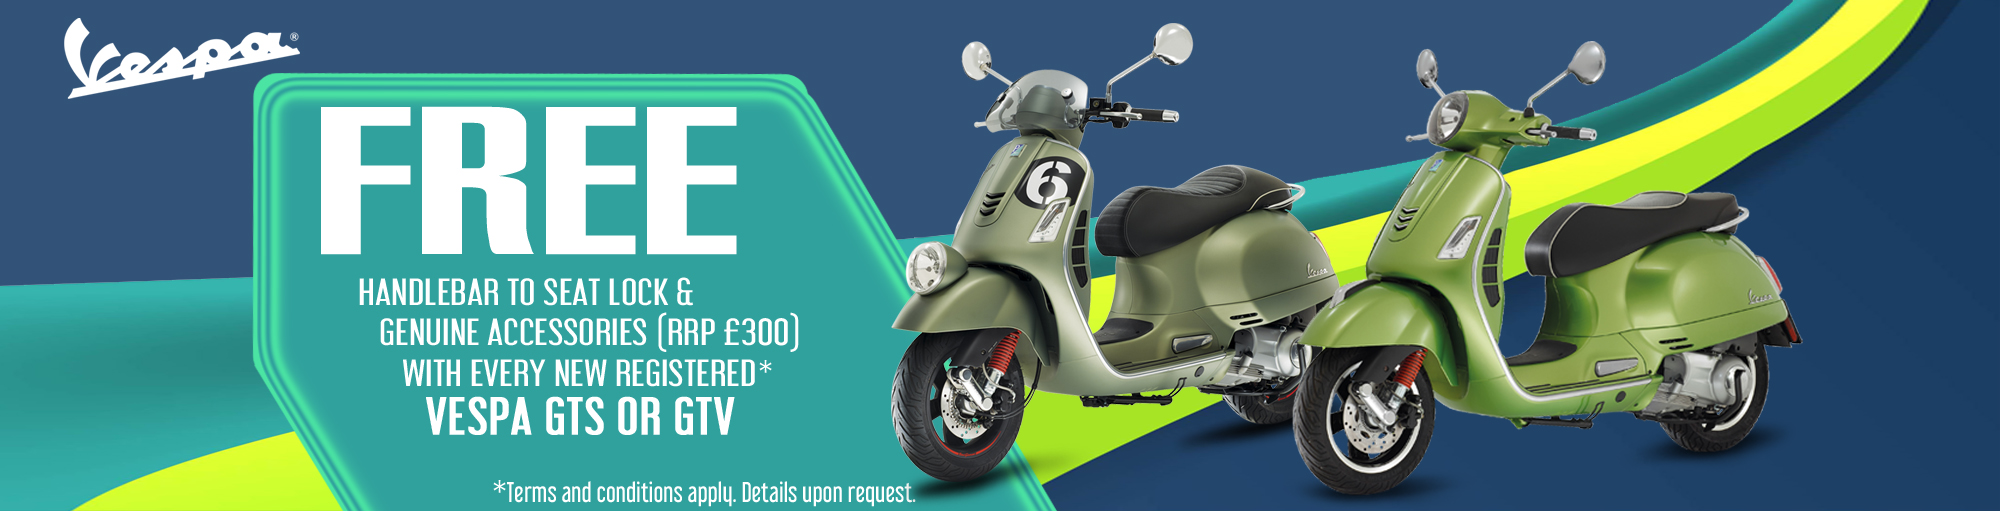 Vespa accessories special offer